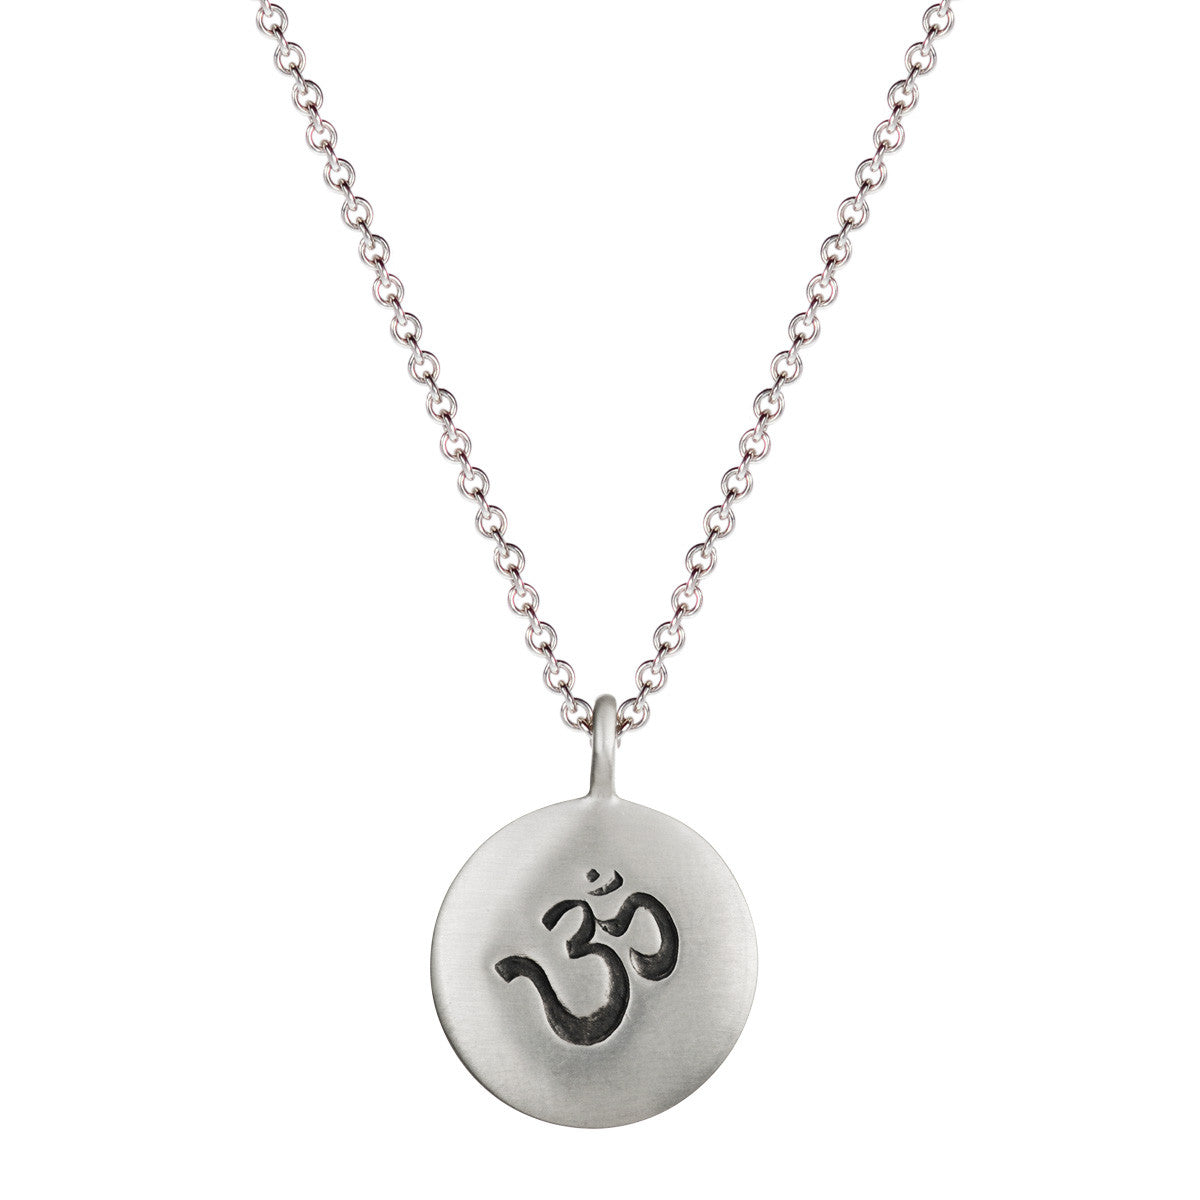 Men's Sterling Silver Medium Om Pendant on Chain